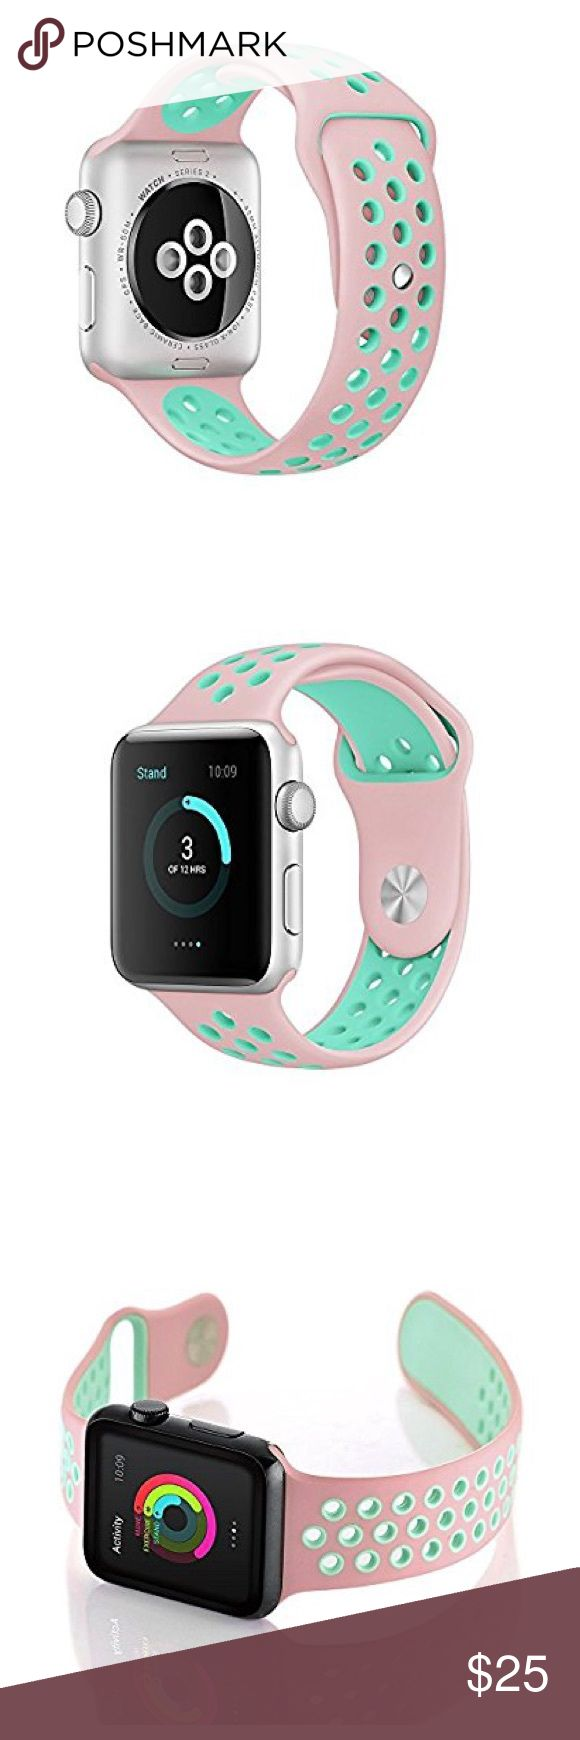 """38mm Nike Style Apple Watch Band Brand new 38mm """"Nike Style""""Apple Watch Sports Band (Watch is not included) Great Gift for your friends and Love ones !!! Accessories Watches"""